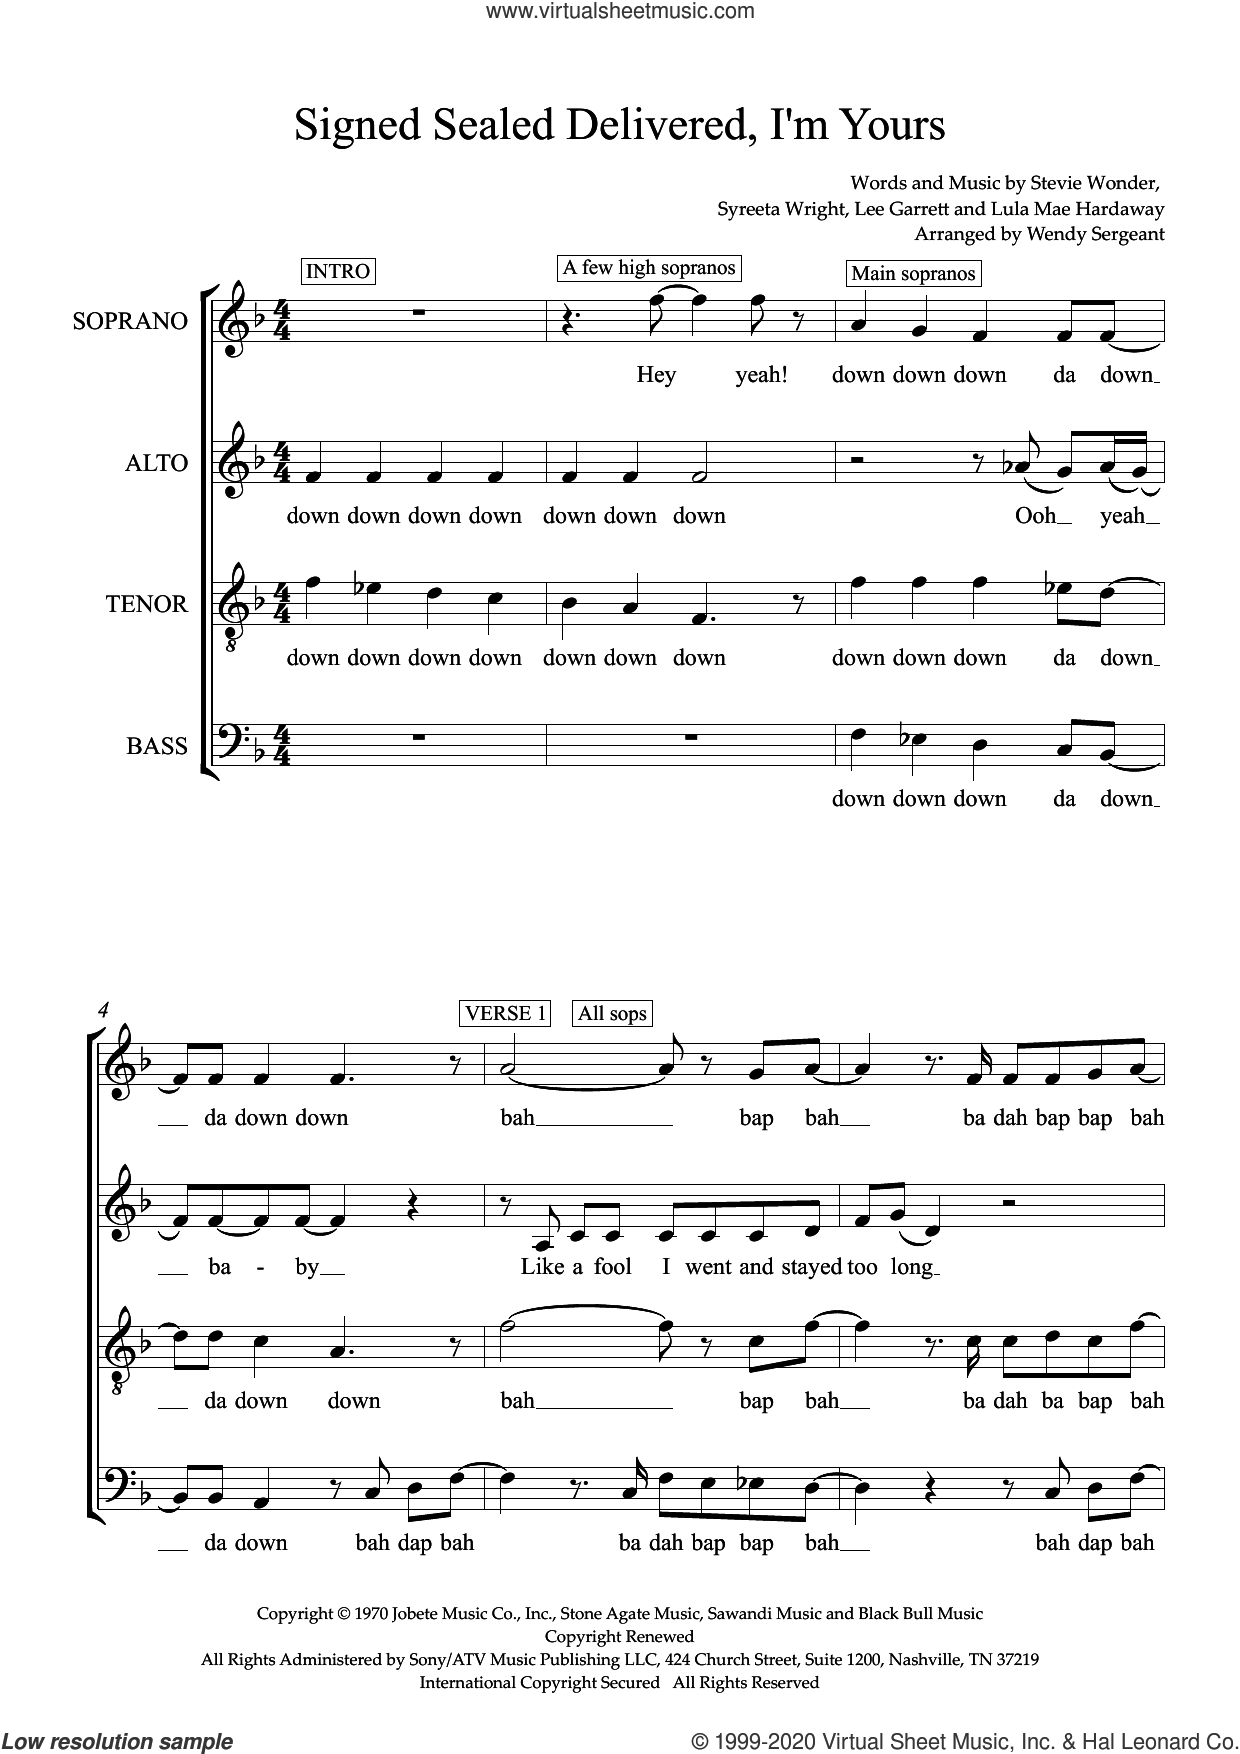 Signed, Sealed, Delivered I'm Yours (arr. Wendy Sergeant) sheet music for choir (SATB: soprano, alto, tenor, bass) by Stevie Wonder, Wendy Sergeant, Lee Garrett, Lula Mae Hardaway and Syreeta Wright, intermediate skill level